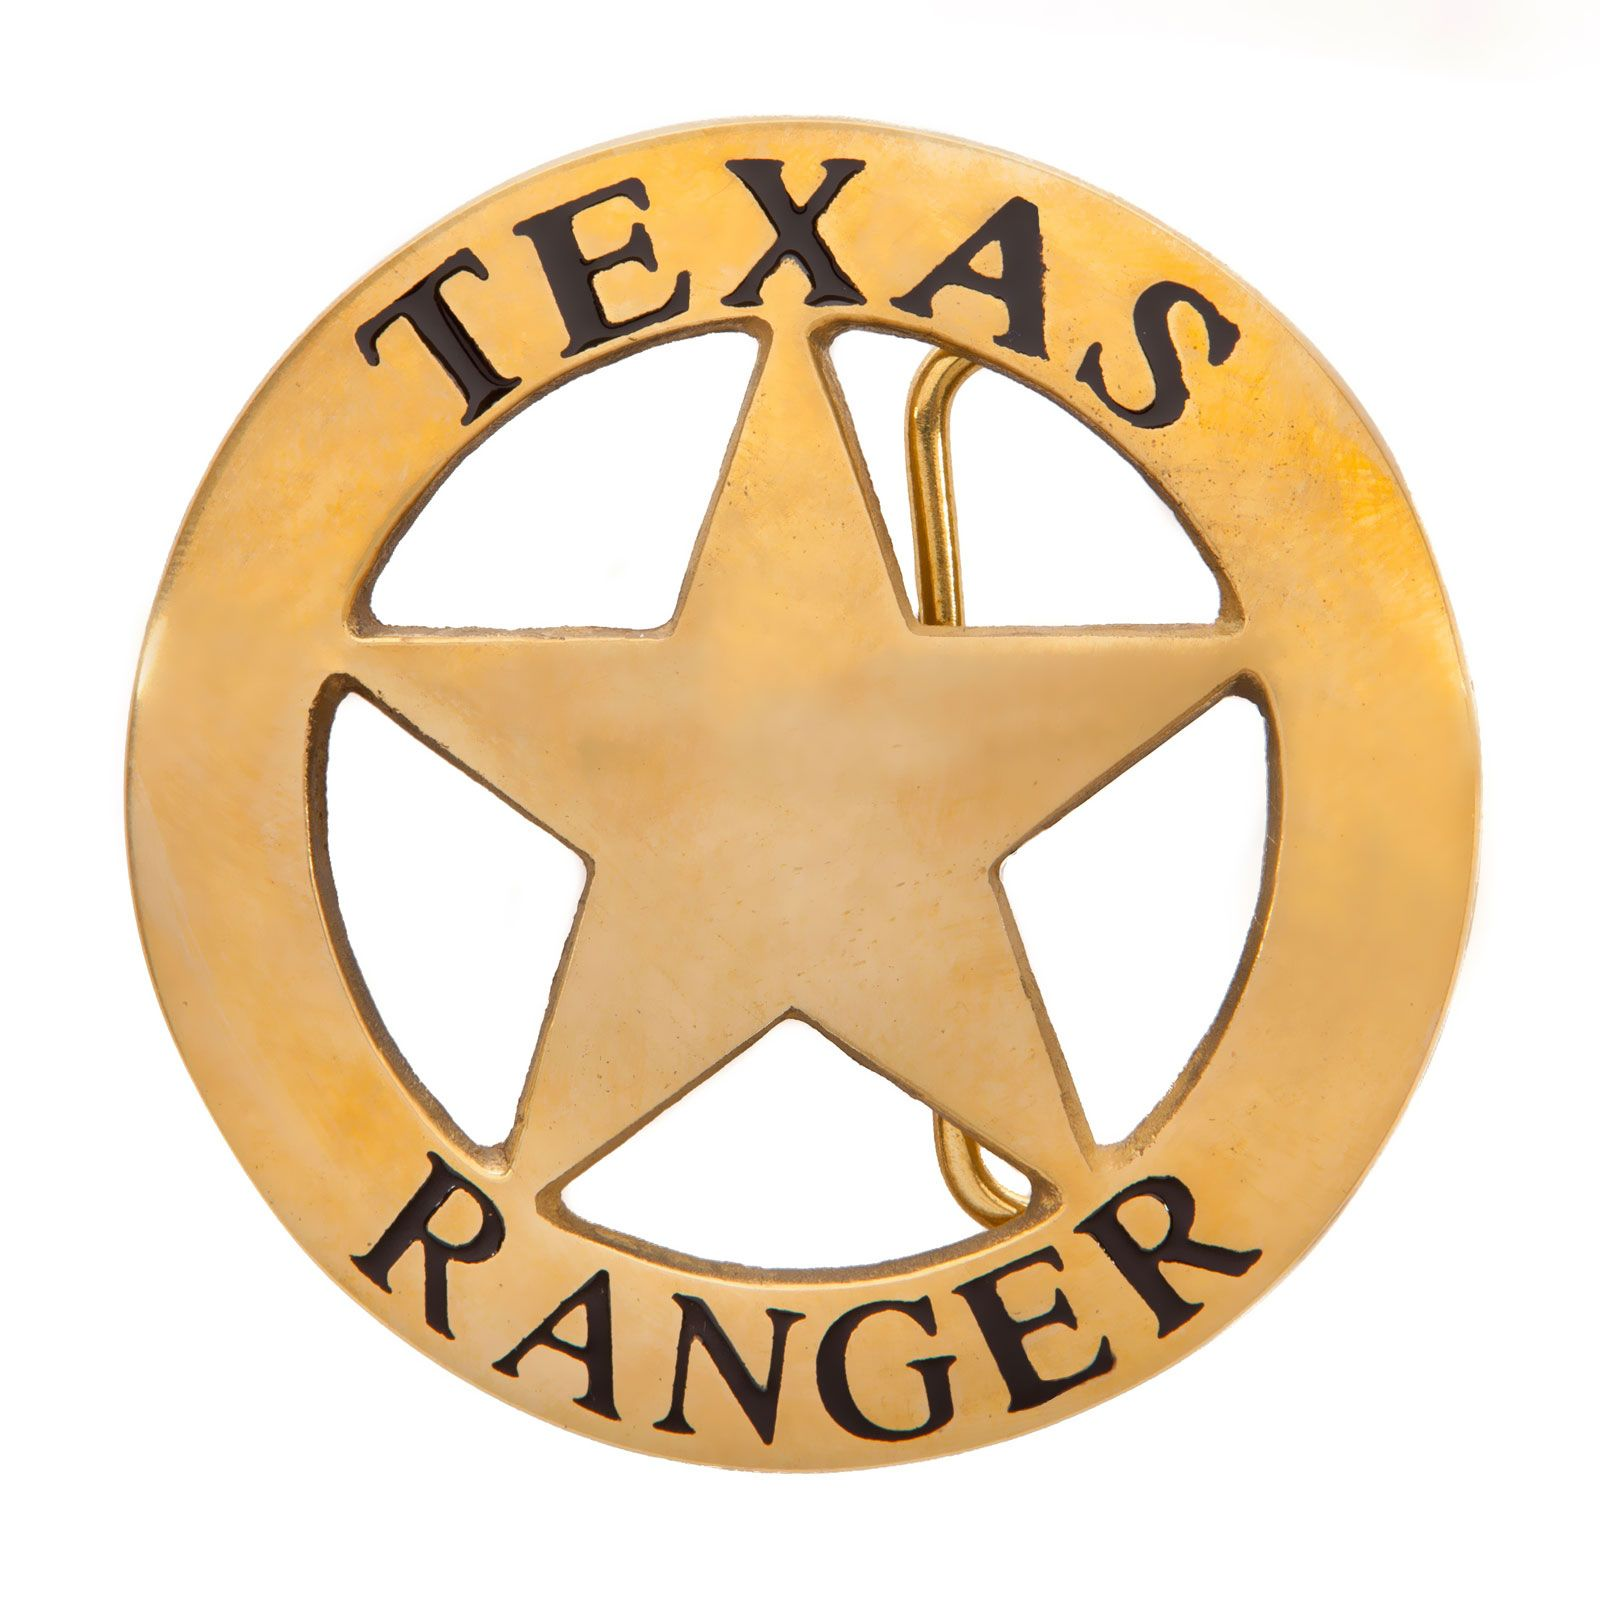 Texas Ranger Gold Tone Belt Buckle